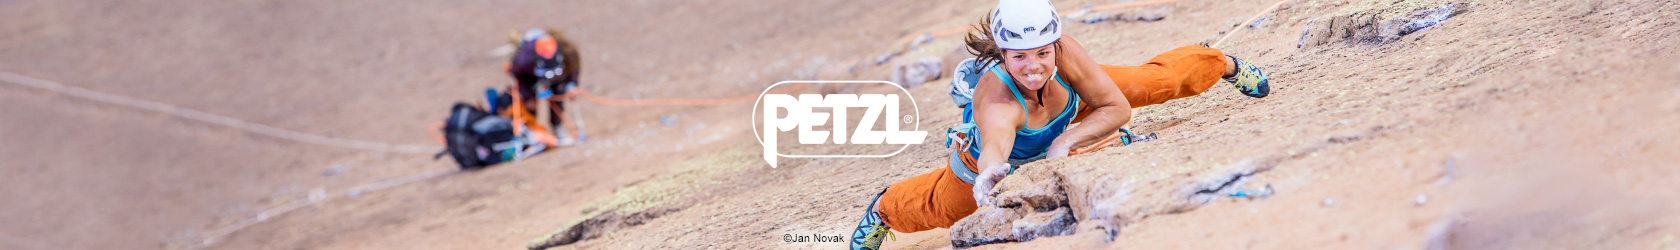 Two people are almost at the top of a rock, wearing and using Petzl gear.